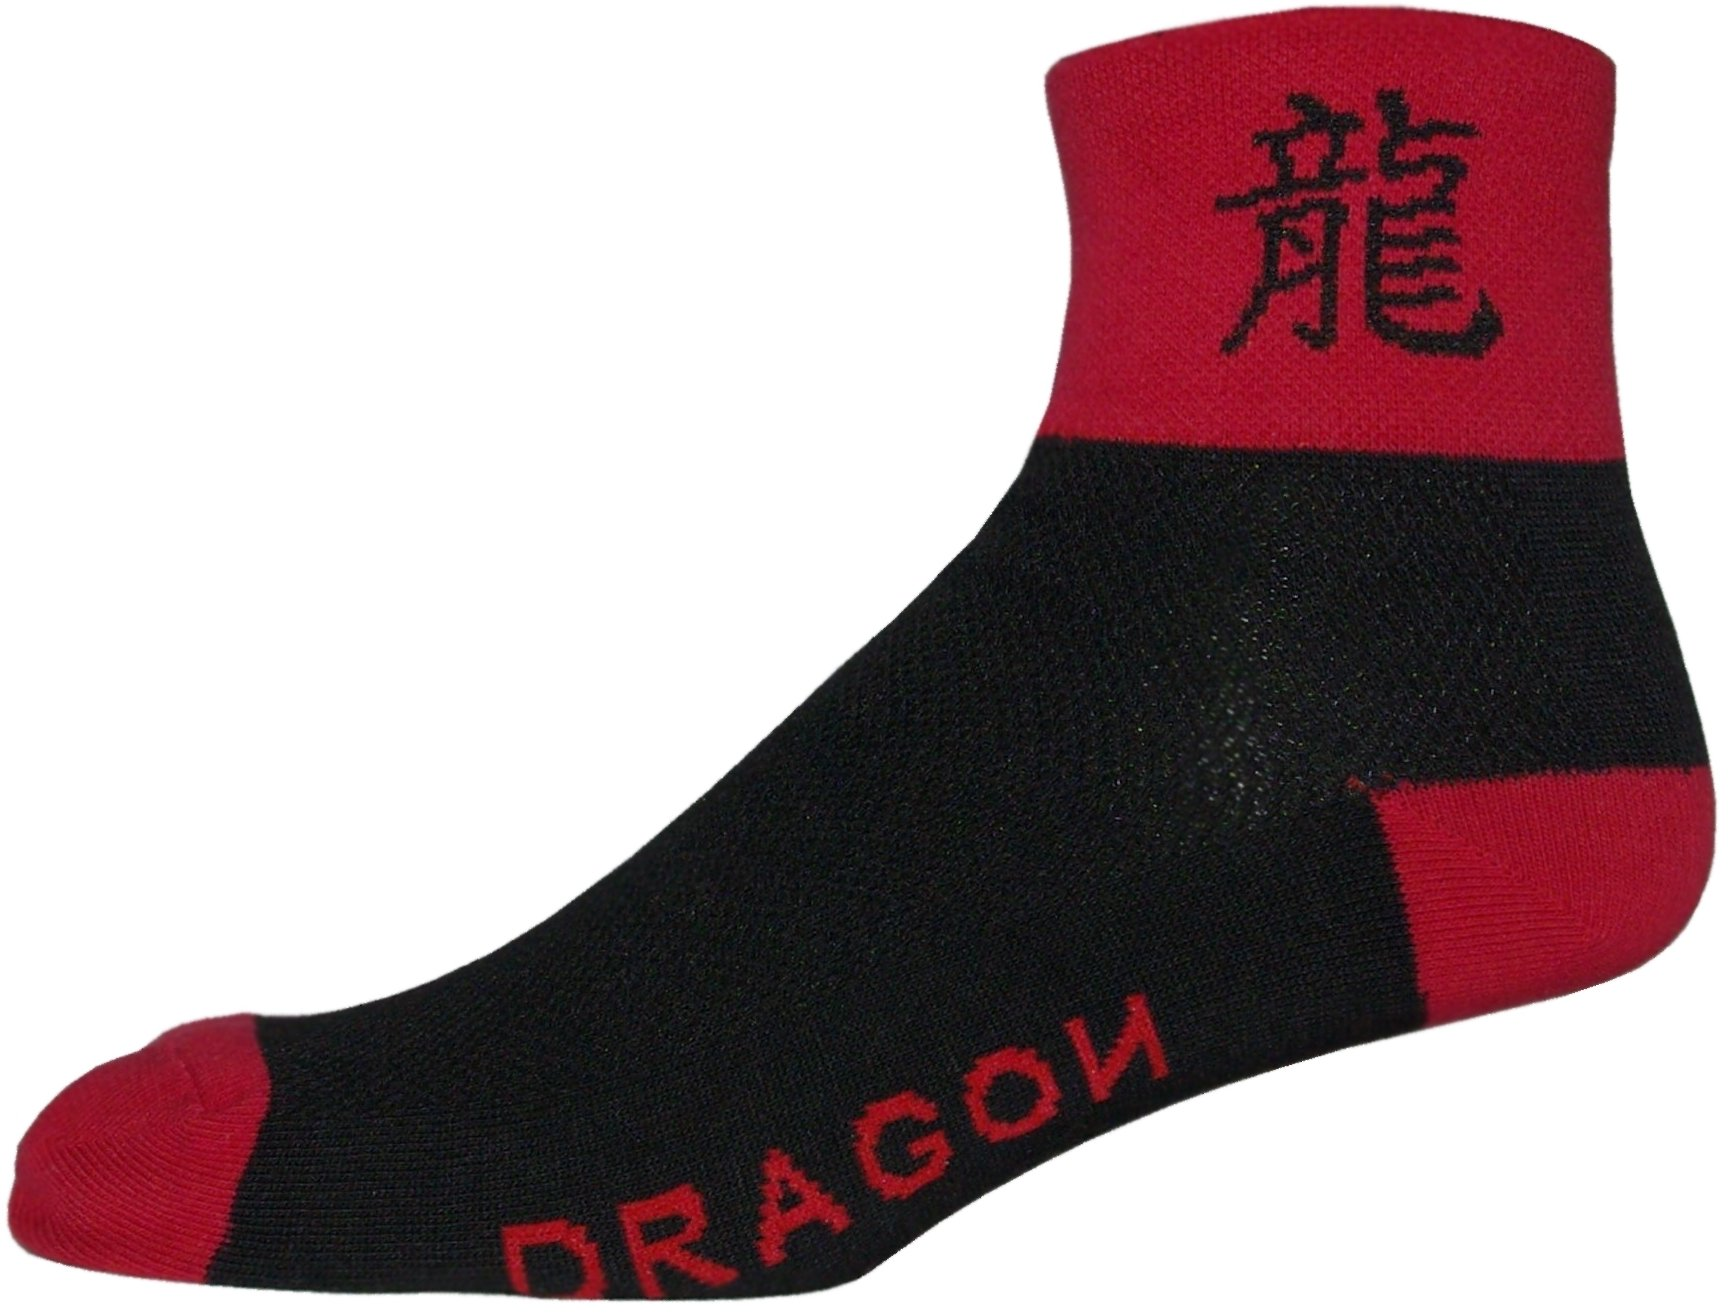 NLZ Dragon Cycling Socks